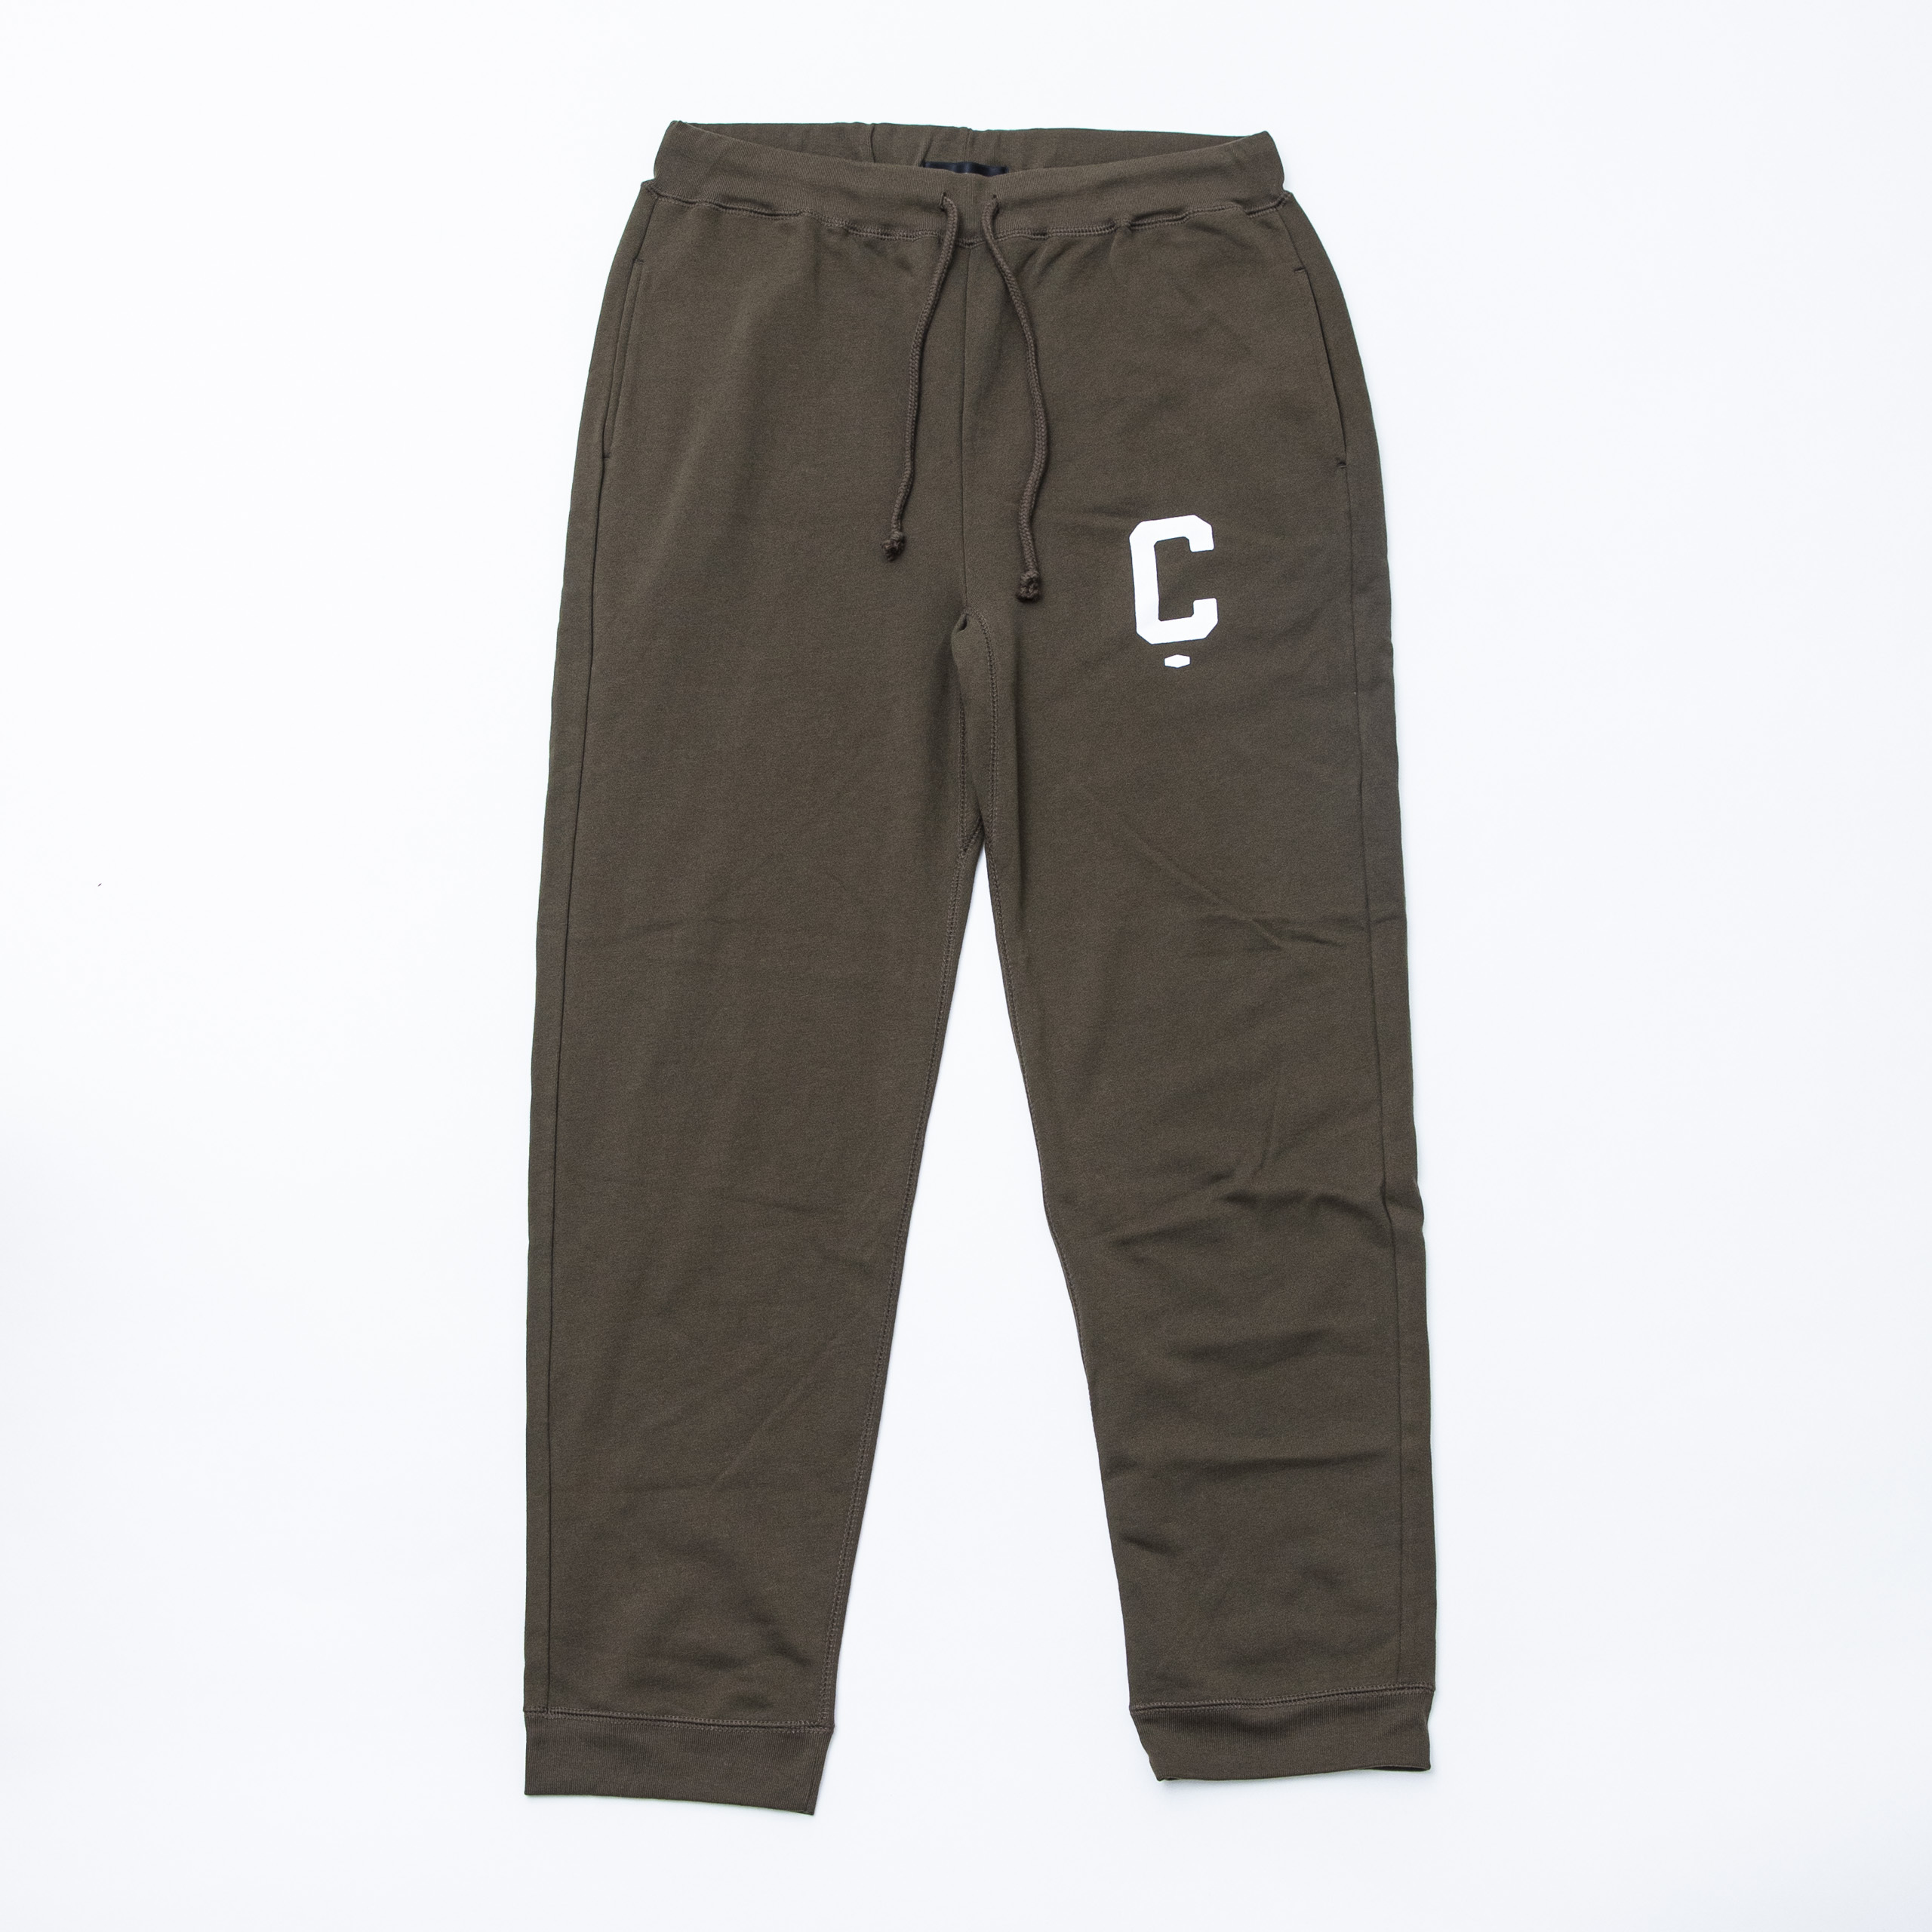 Big C Sweat pants KHAKI